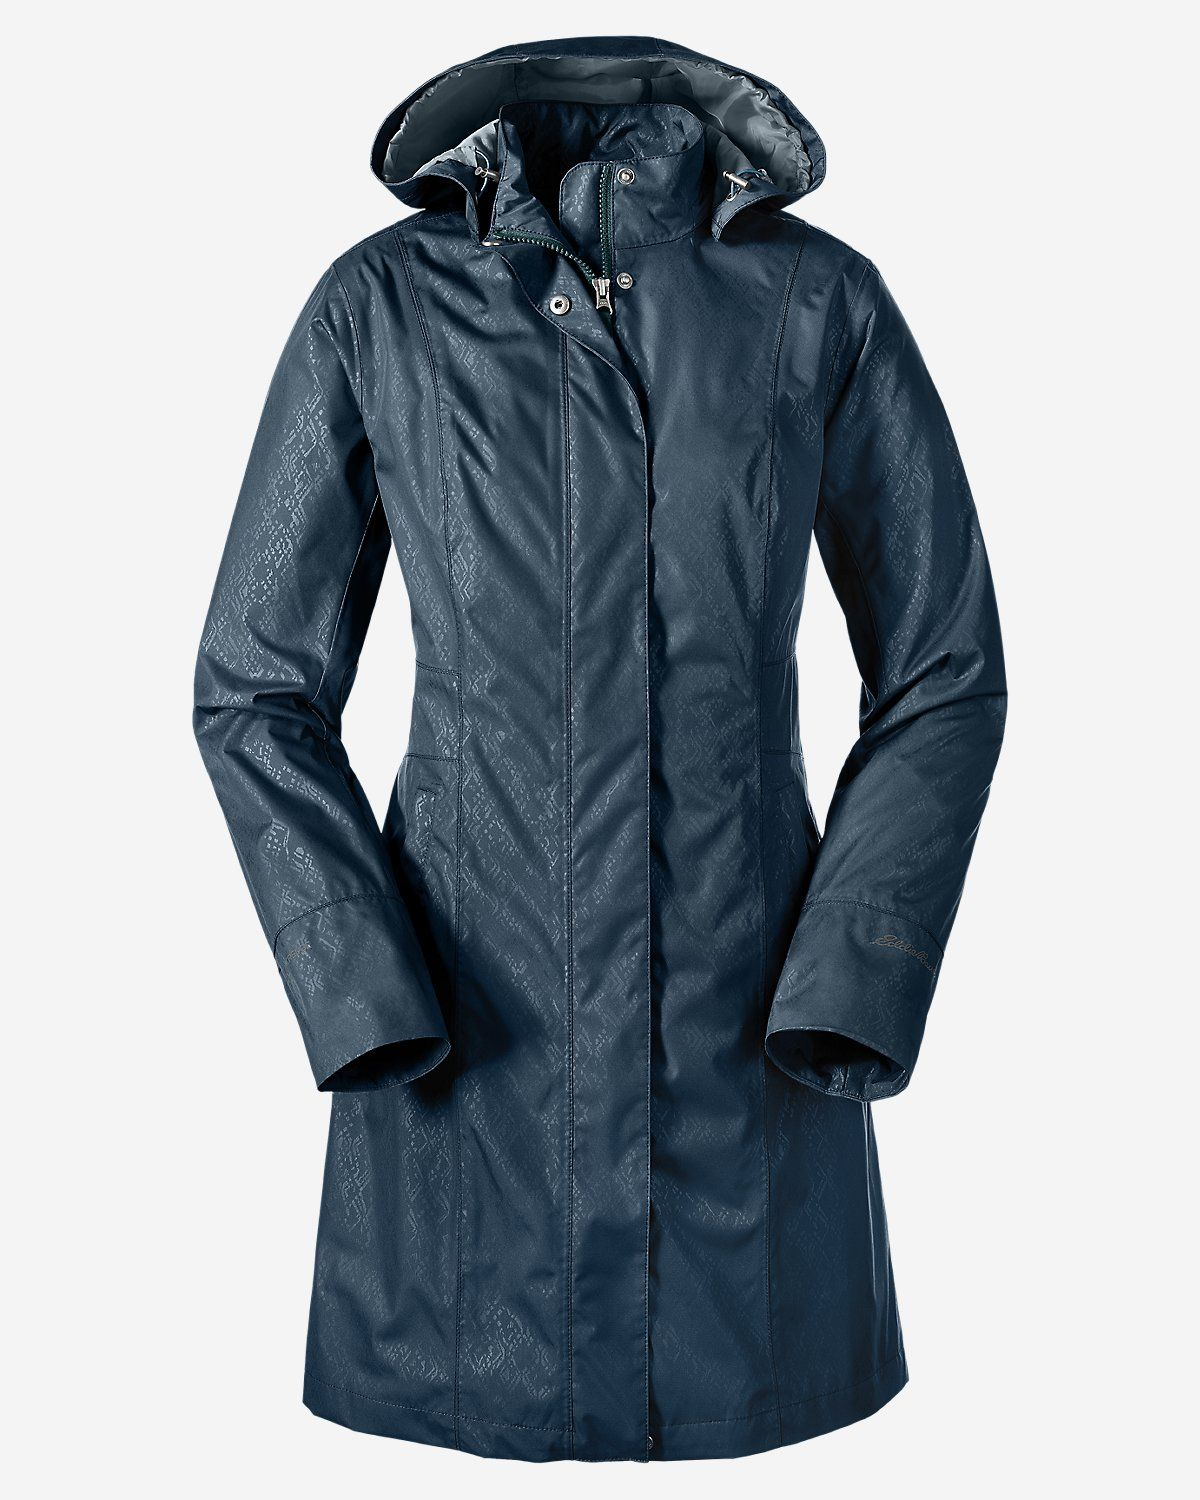 31c465f4f1 Shop women s girl on the go trench coat in Women s at Eddie Bauer.